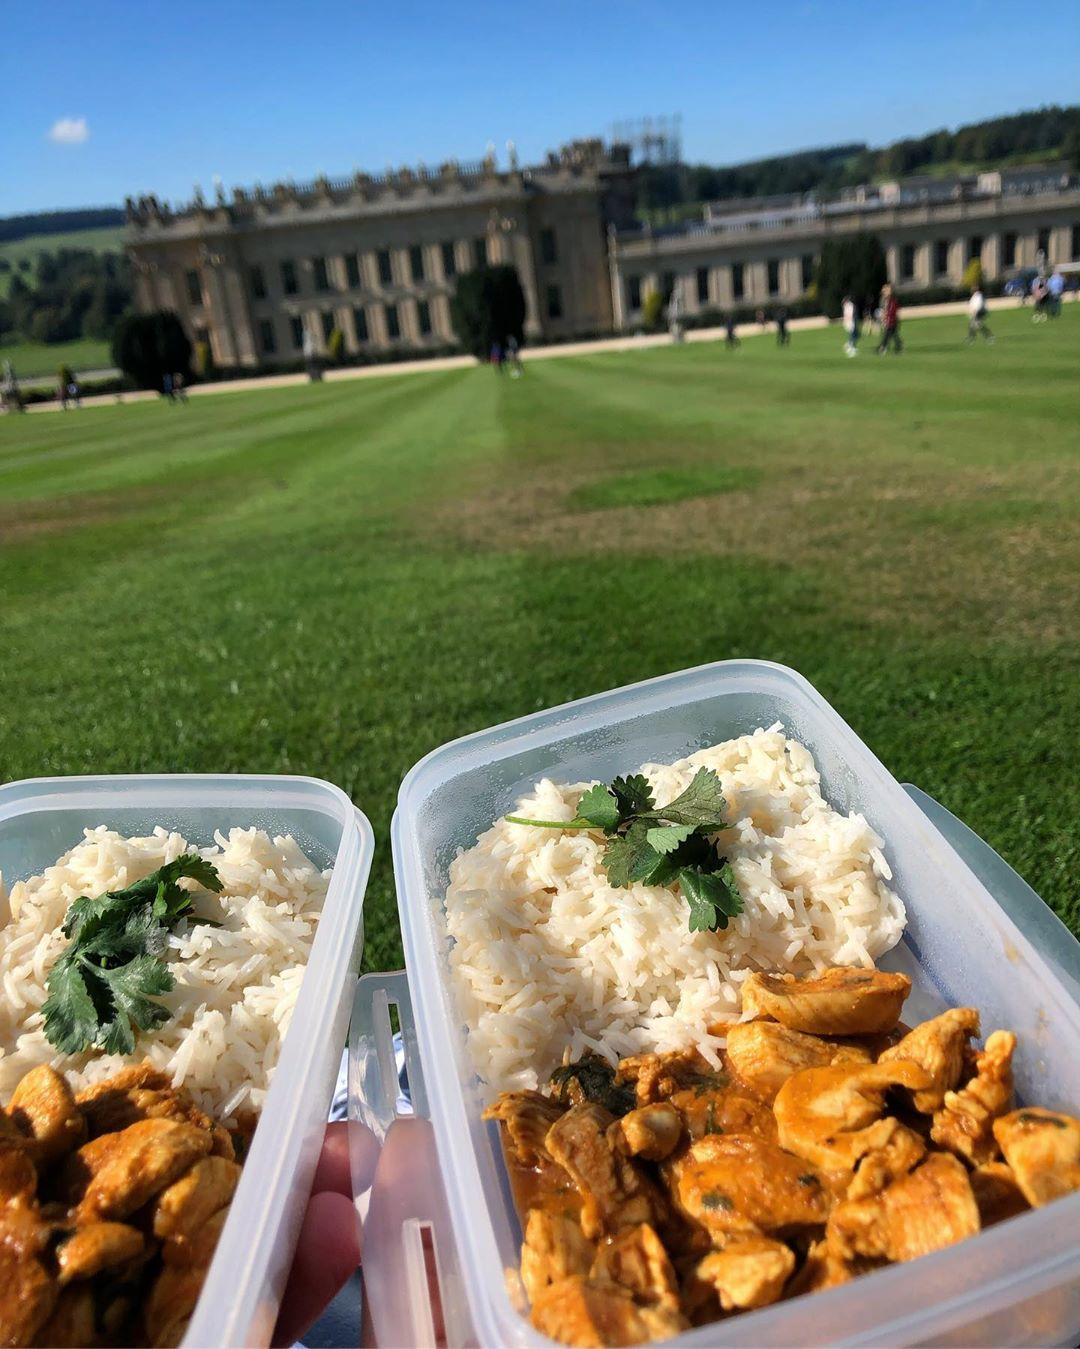 🌿🧺💙Picnic lunch at Chicken Korma & rice 😋☀️🌿